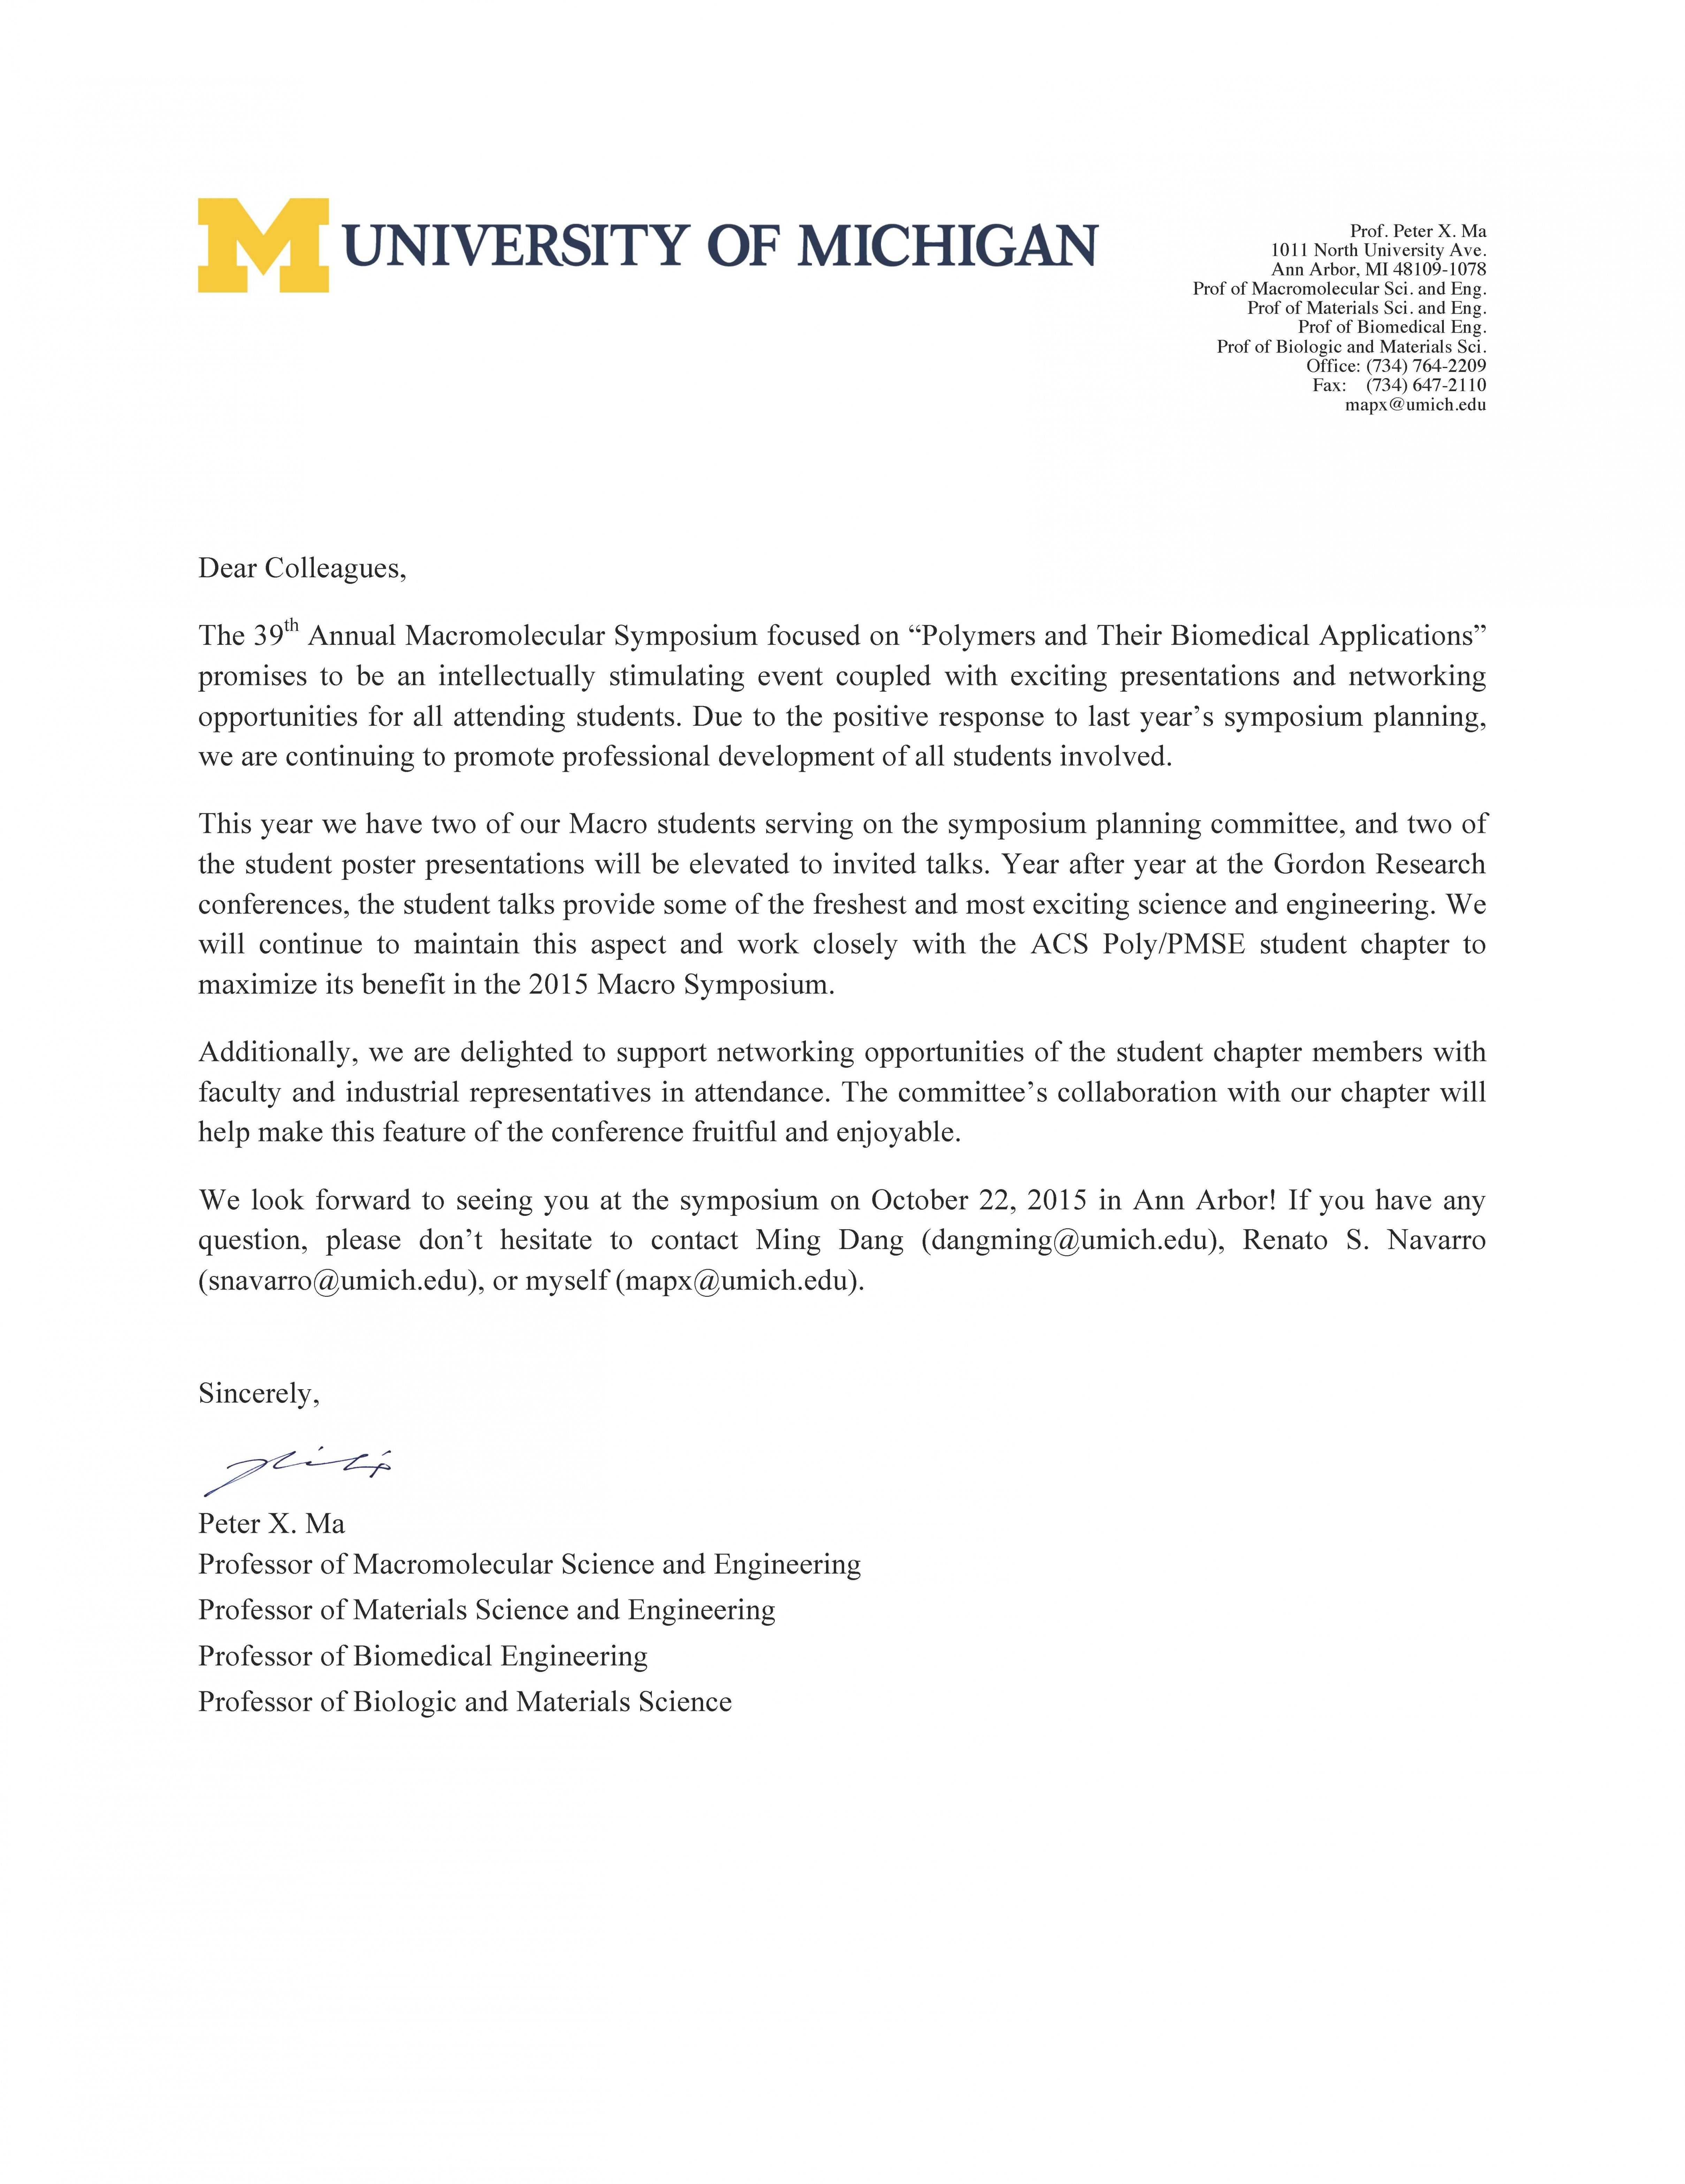 Cover Letter Template Umich Resume Format Letter Of Recommendation Cover Letter Template Lettering